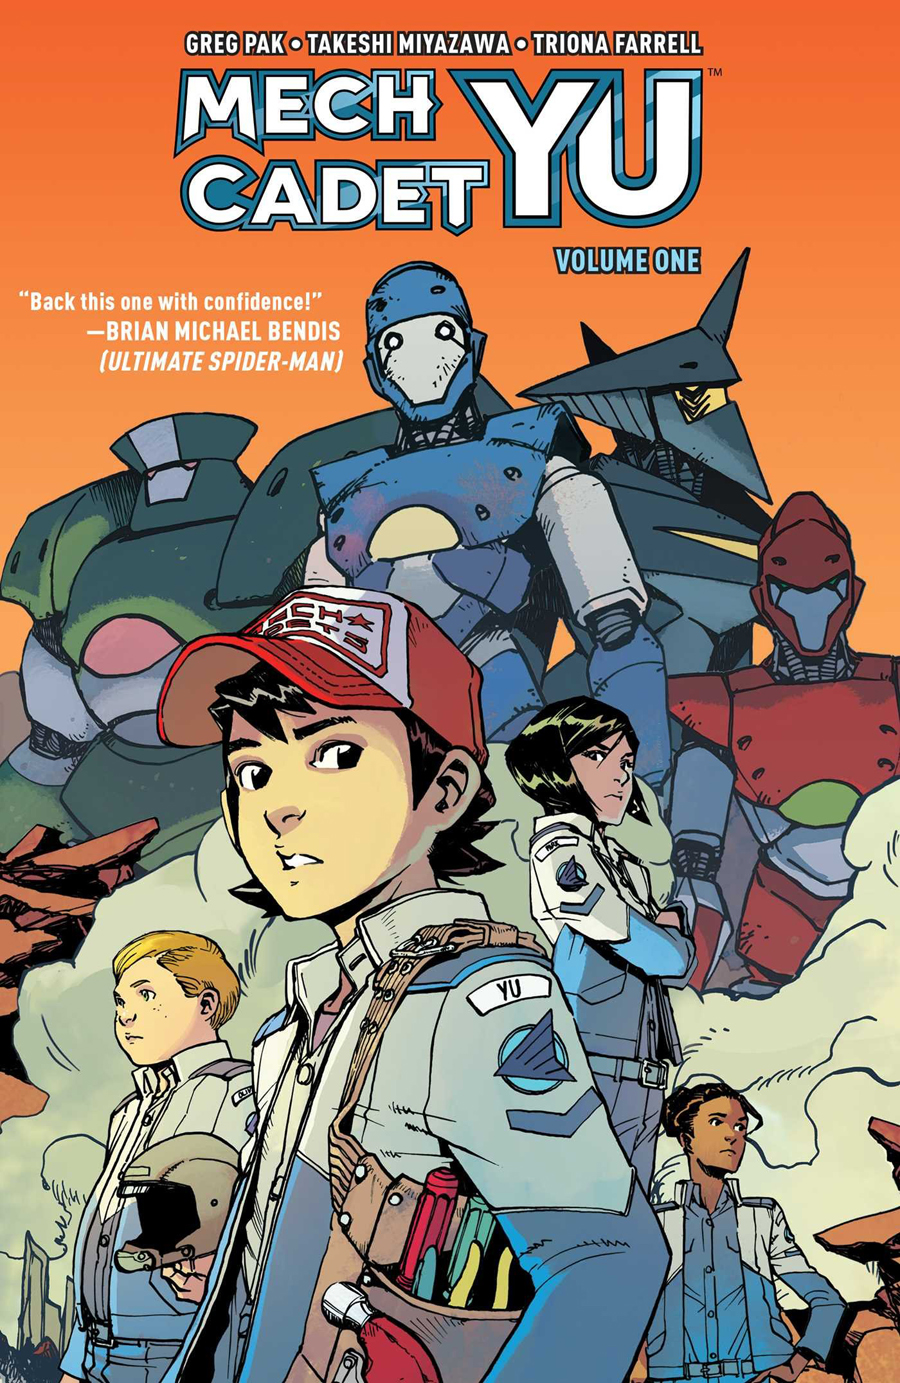 The front cover of Mech Cadet Yu Vol. 1 showing Team Stanford.